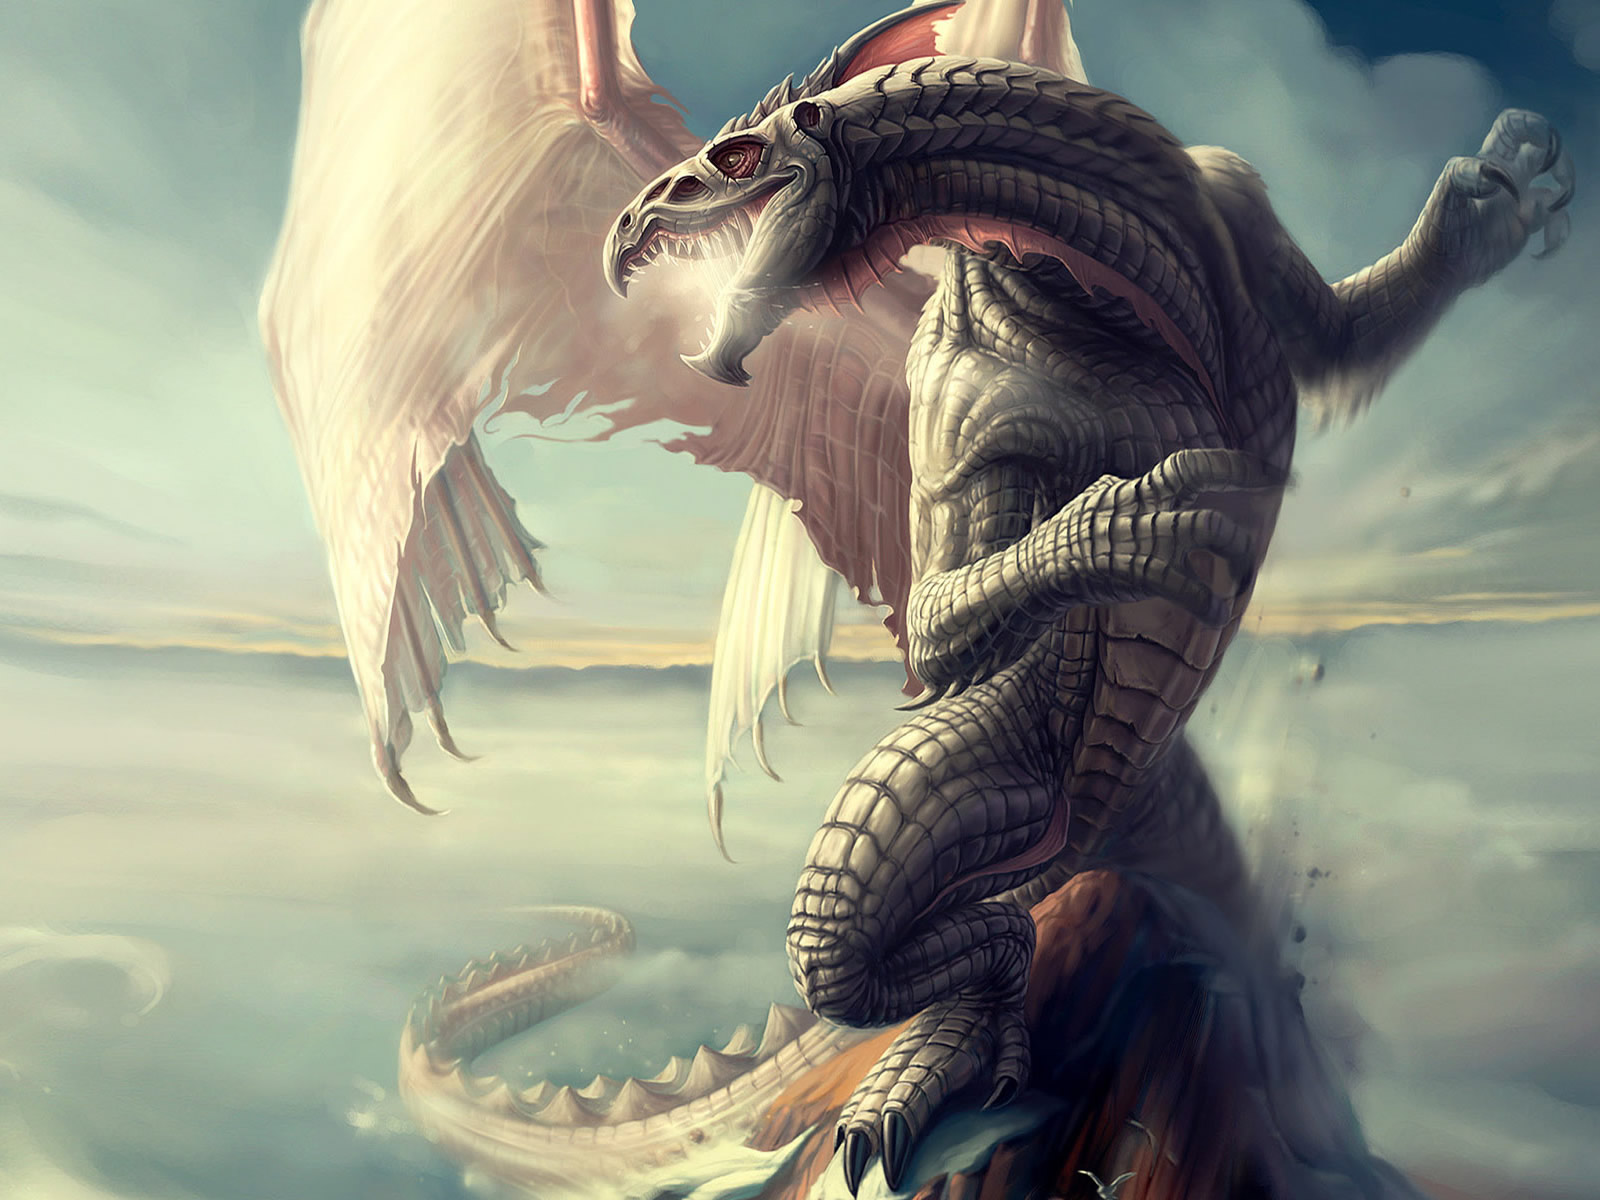 Wallpapers hd for mac dragon 3d wallpaper high definition - Dragon wallpaper 3d ...